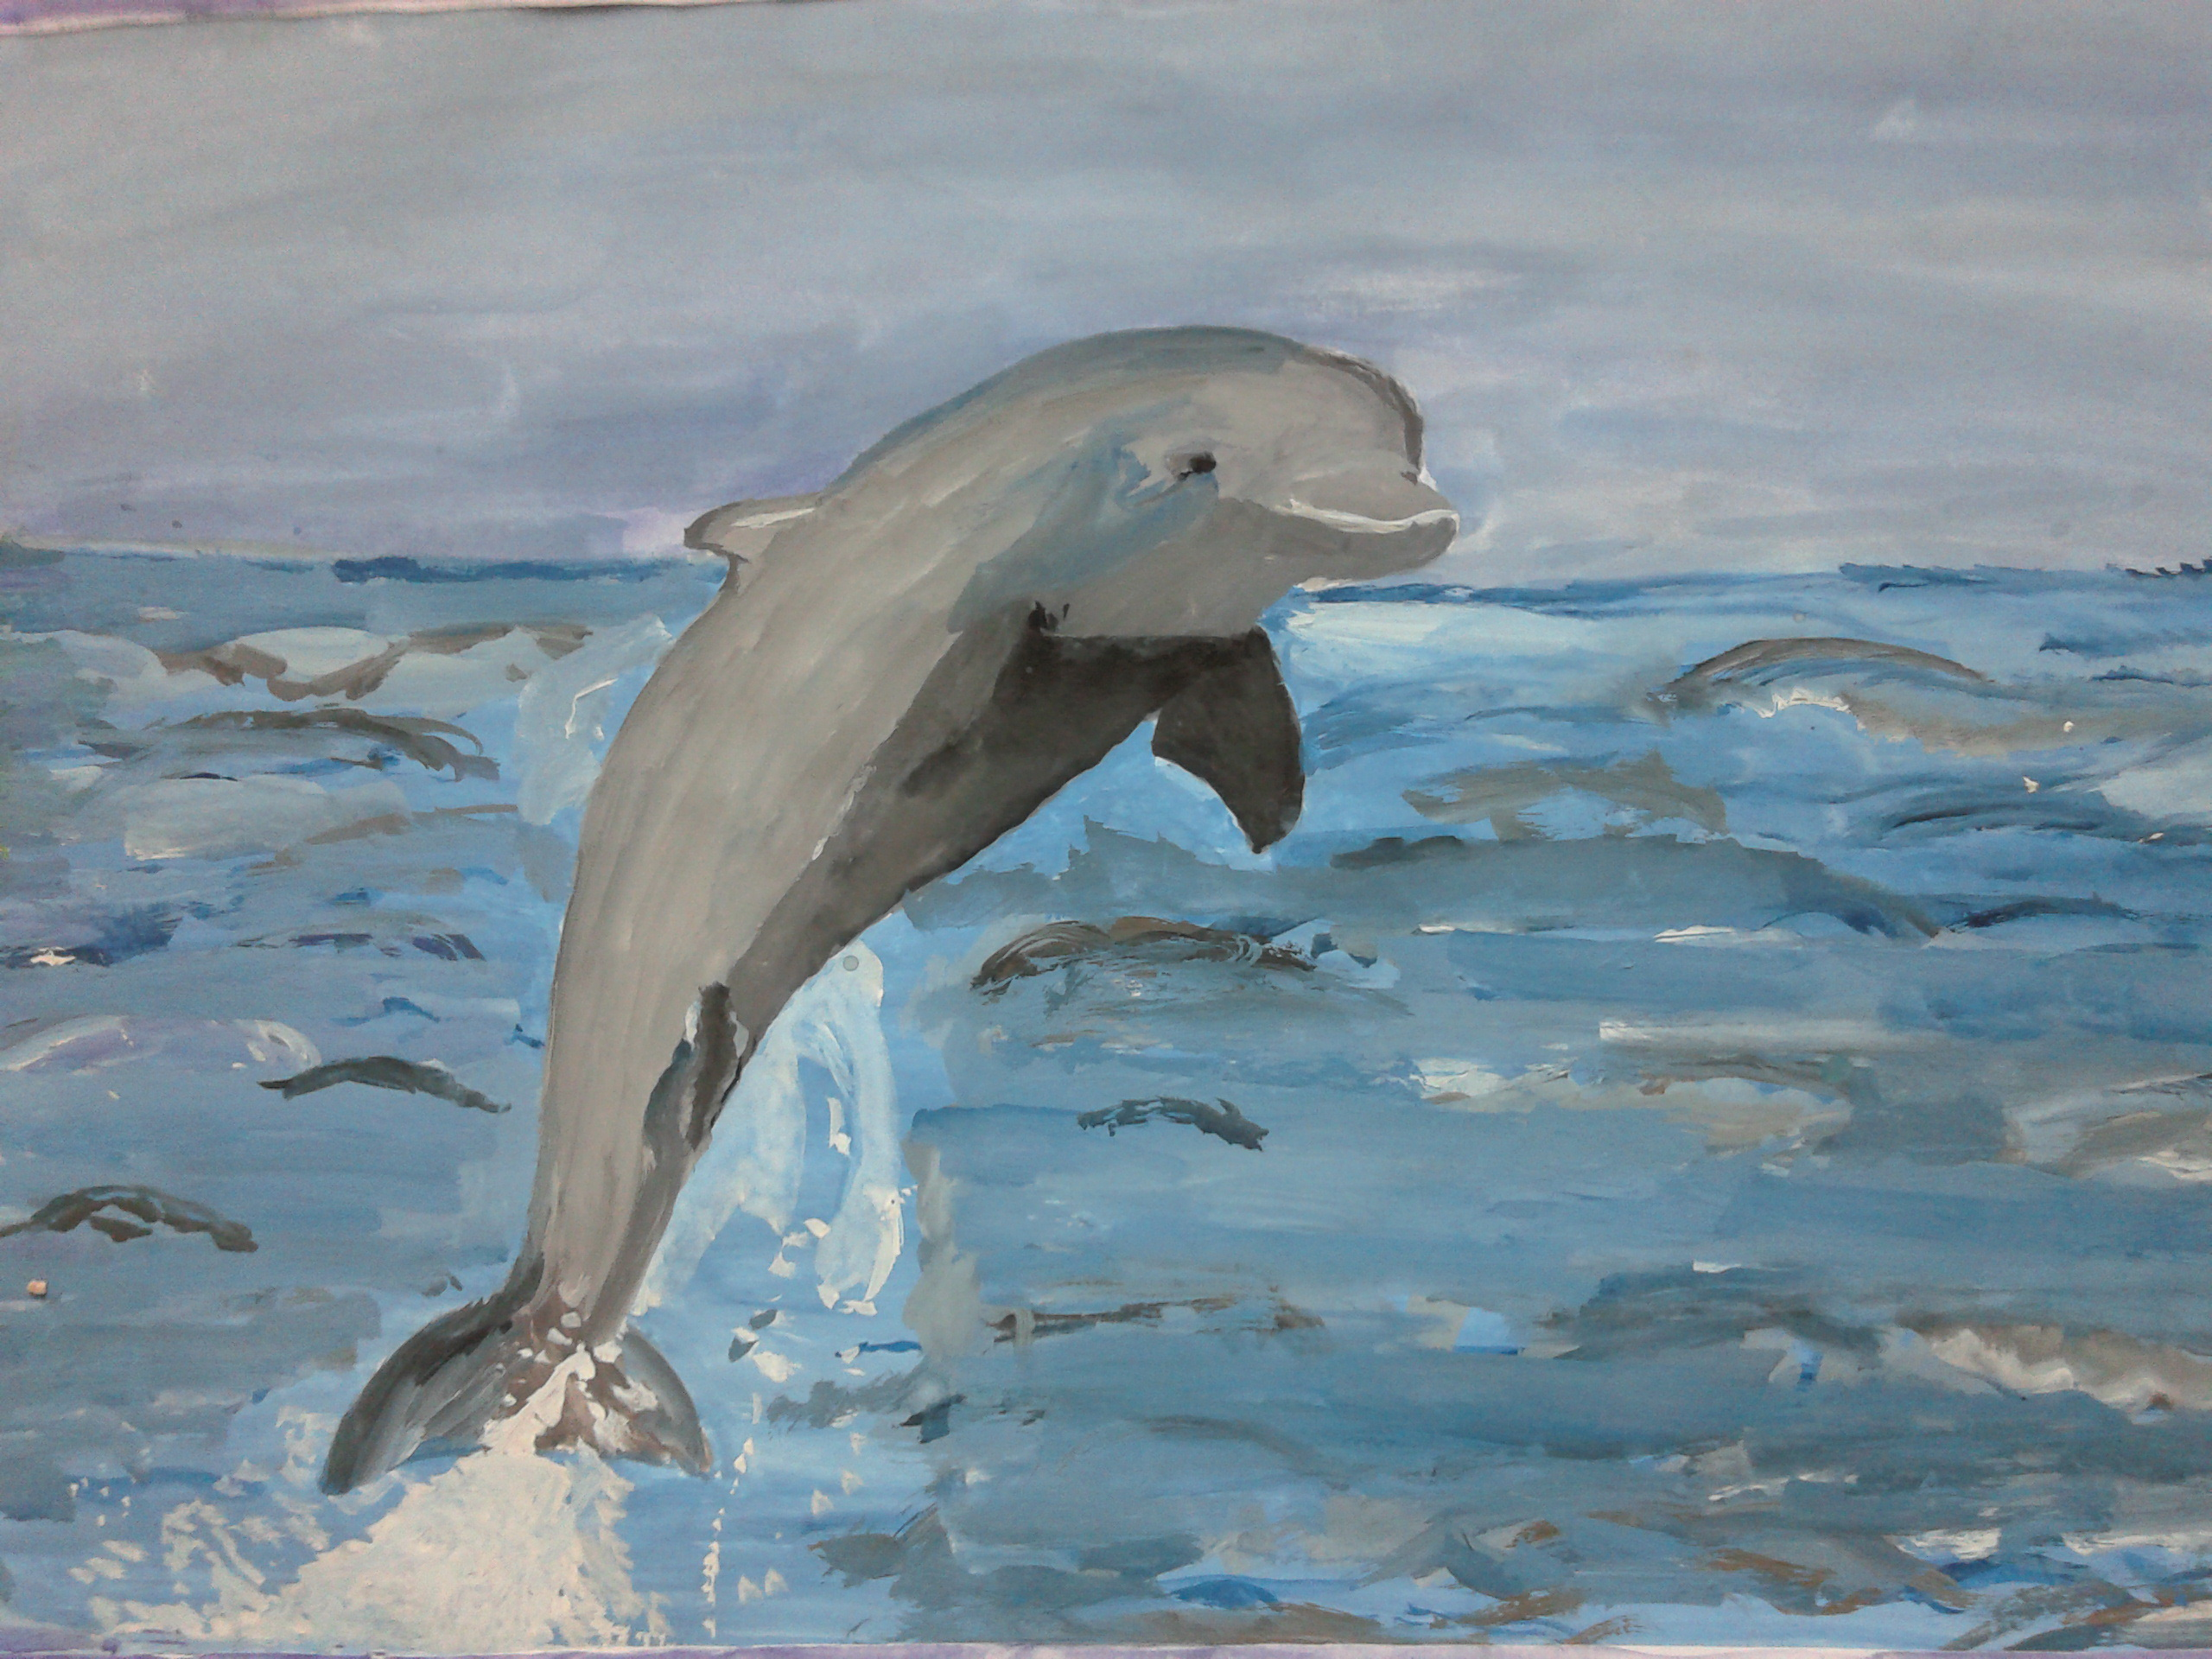 A jumping dolphin by Nemirva